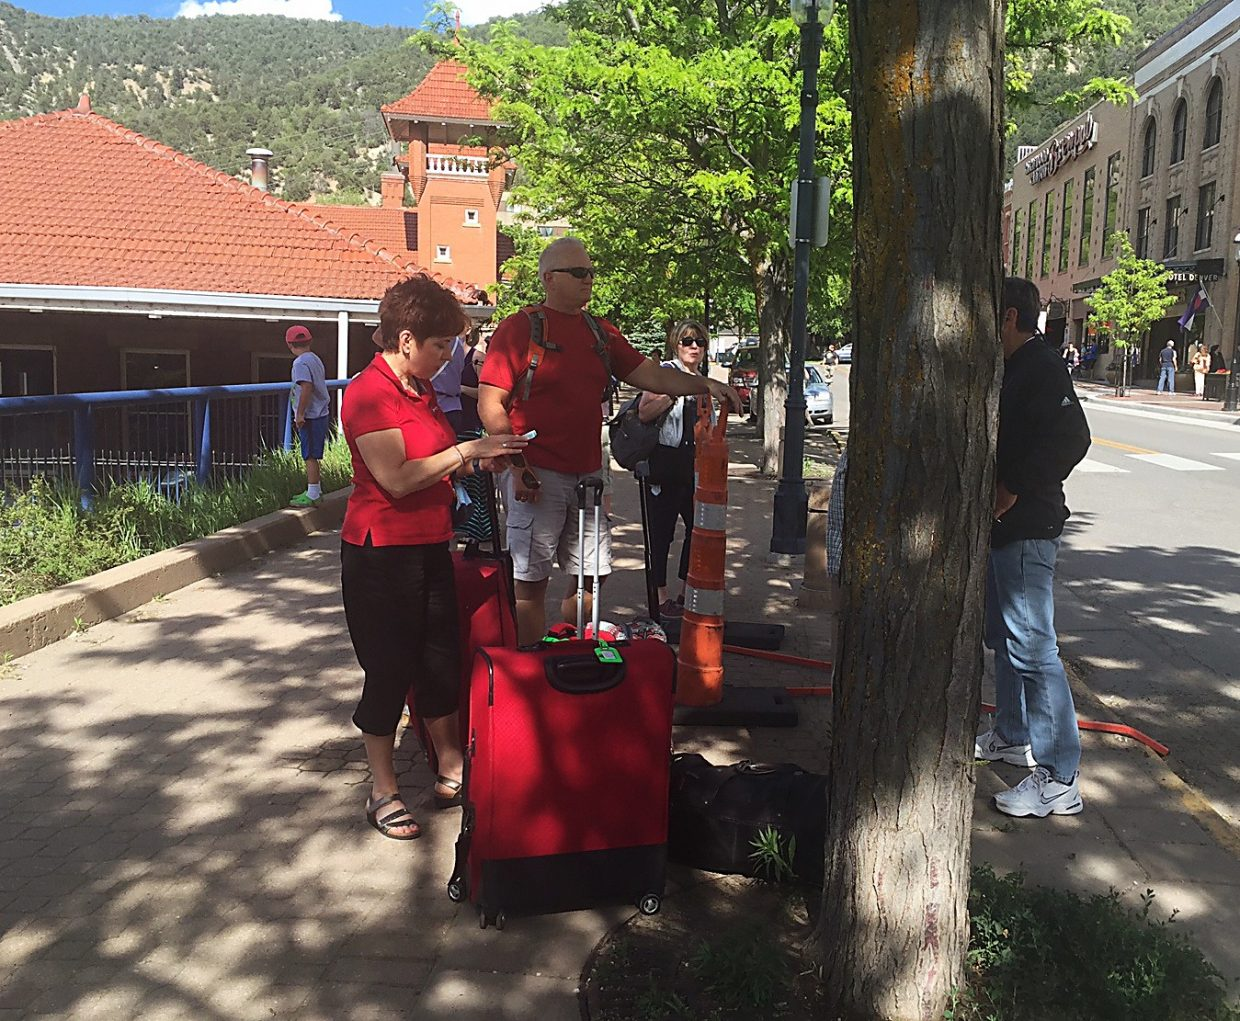 On the bright side, it was a nice day in Glenwood Springs, where westbound California Zephyr passengers were stranded after the train collided with a pickup truck at a crossing west of town.